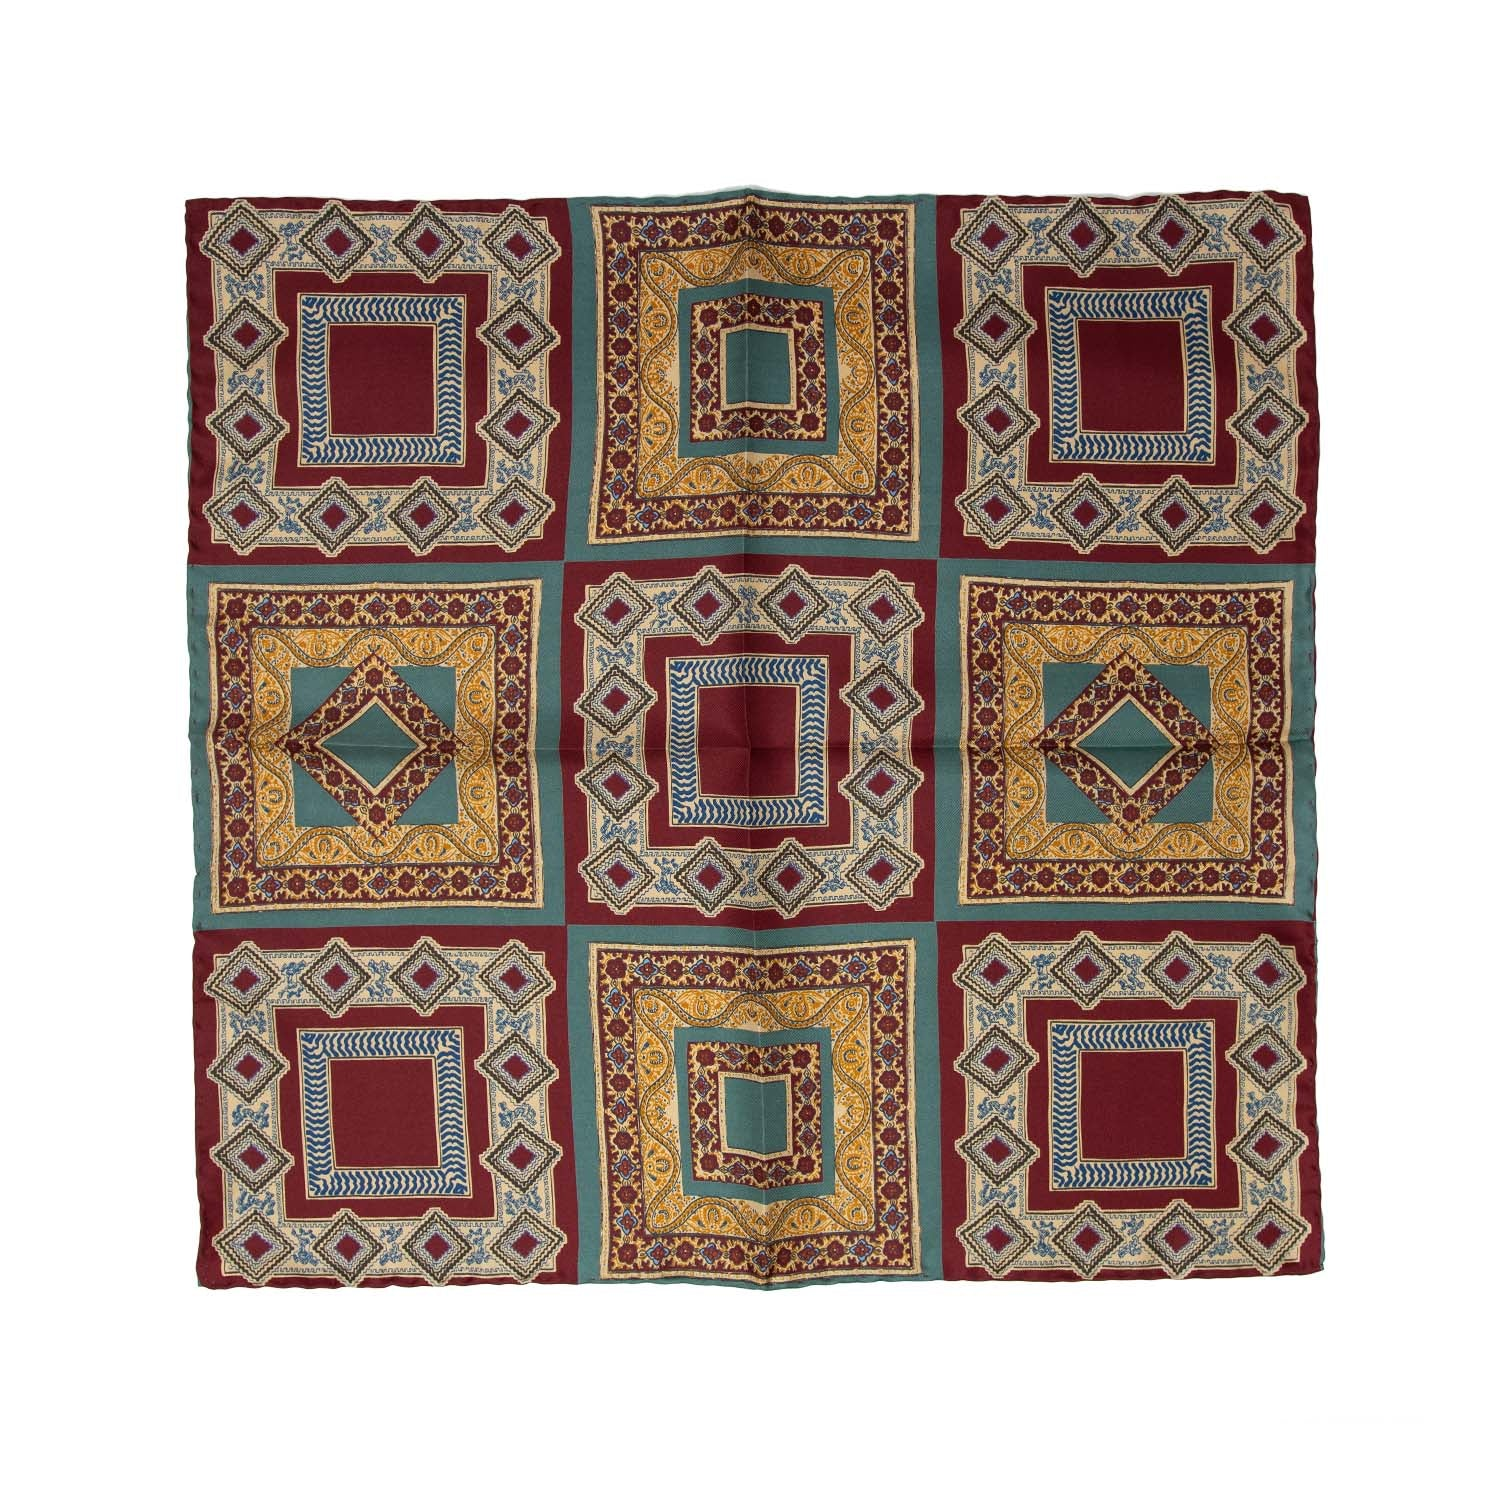 serà fine silk - Burgundy and Sage Green Vintage Pattern Pocket Square